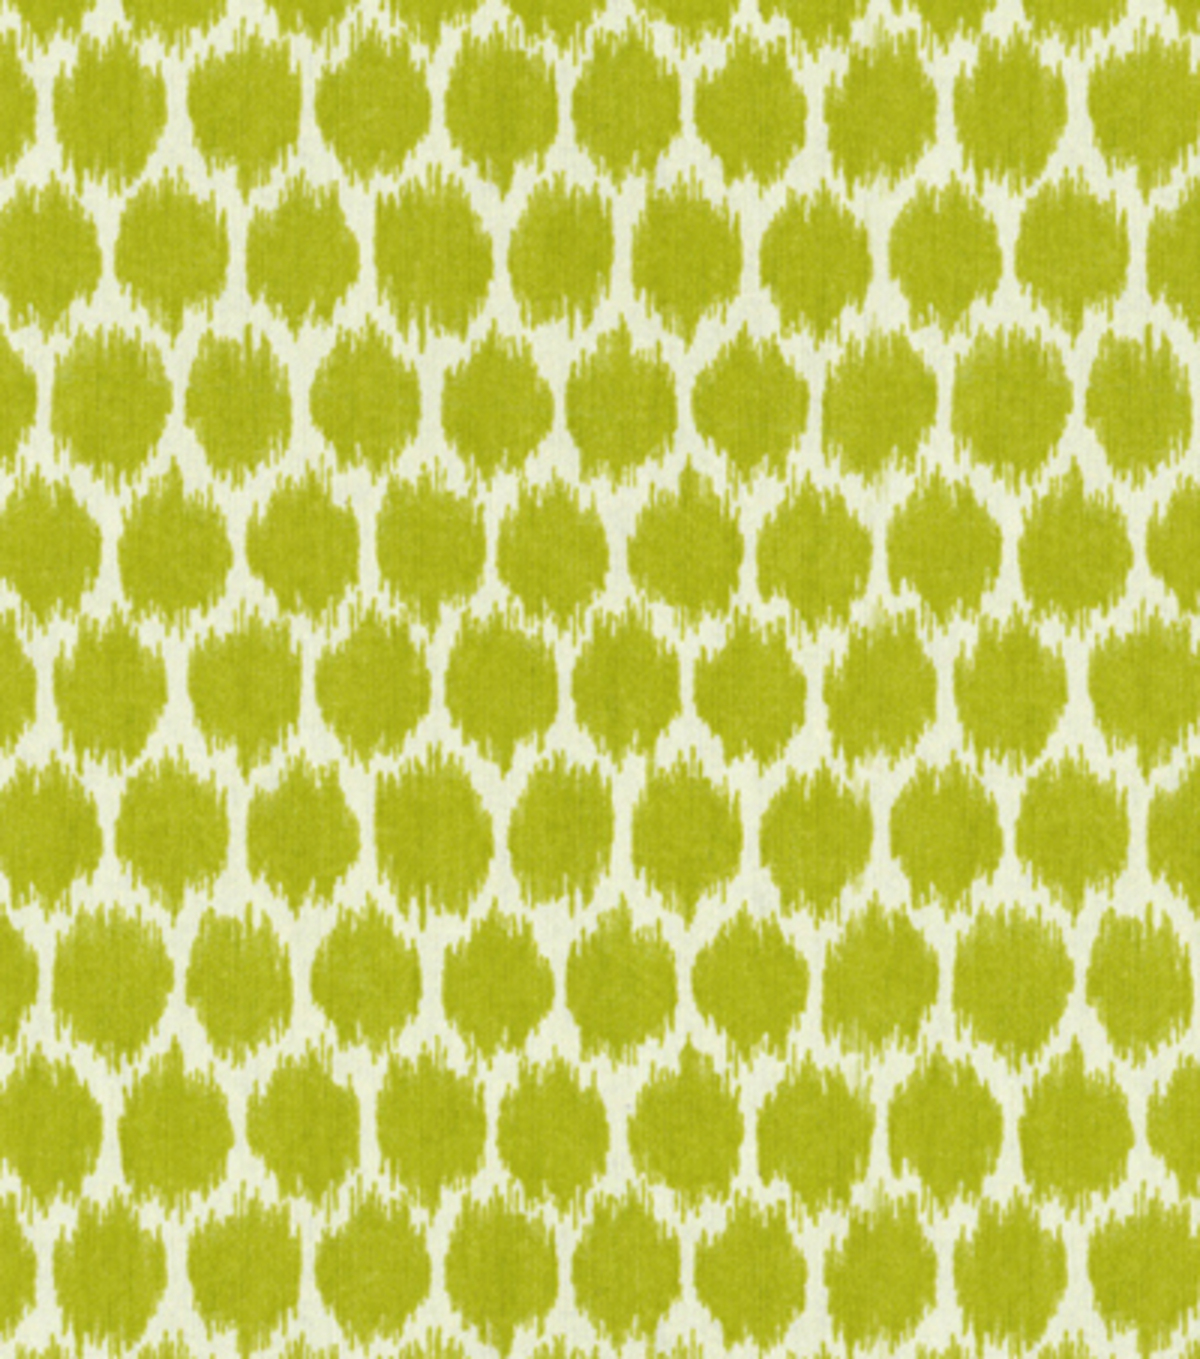 Home Decor 8\u0022x8\u0022 Fabric Swatch-Waverly Seeing Spots Wasabi